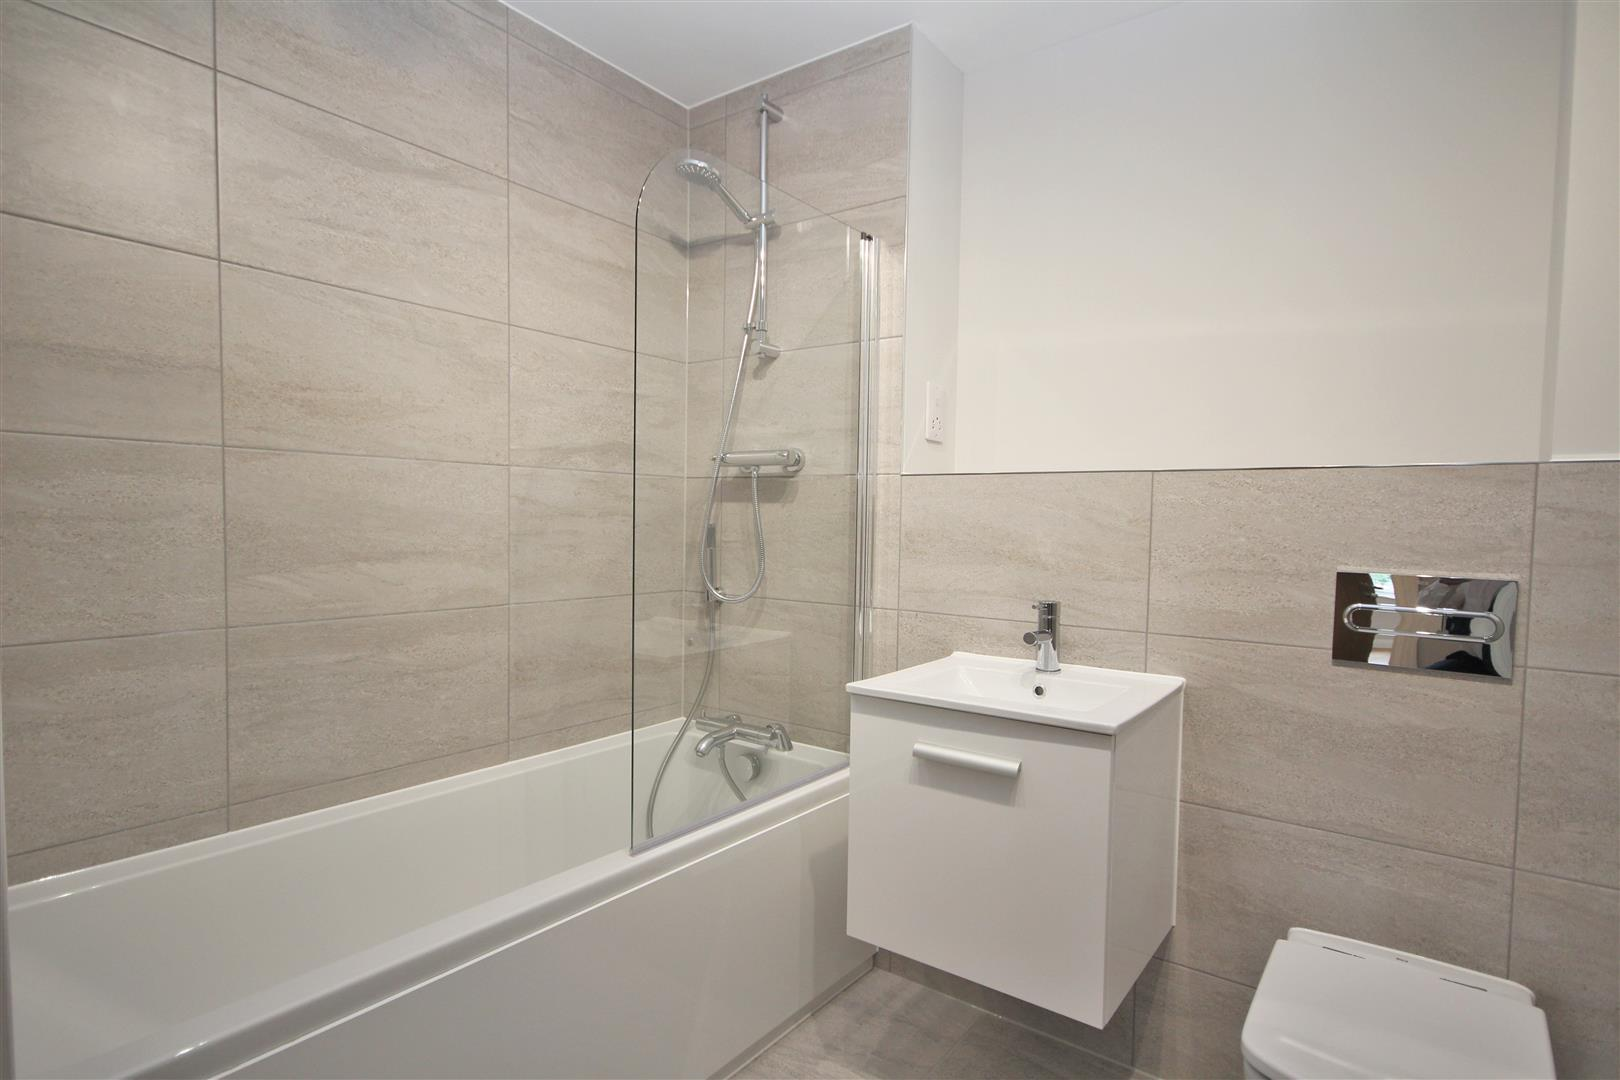 2 bed Flat to rent - (Property Image 11)